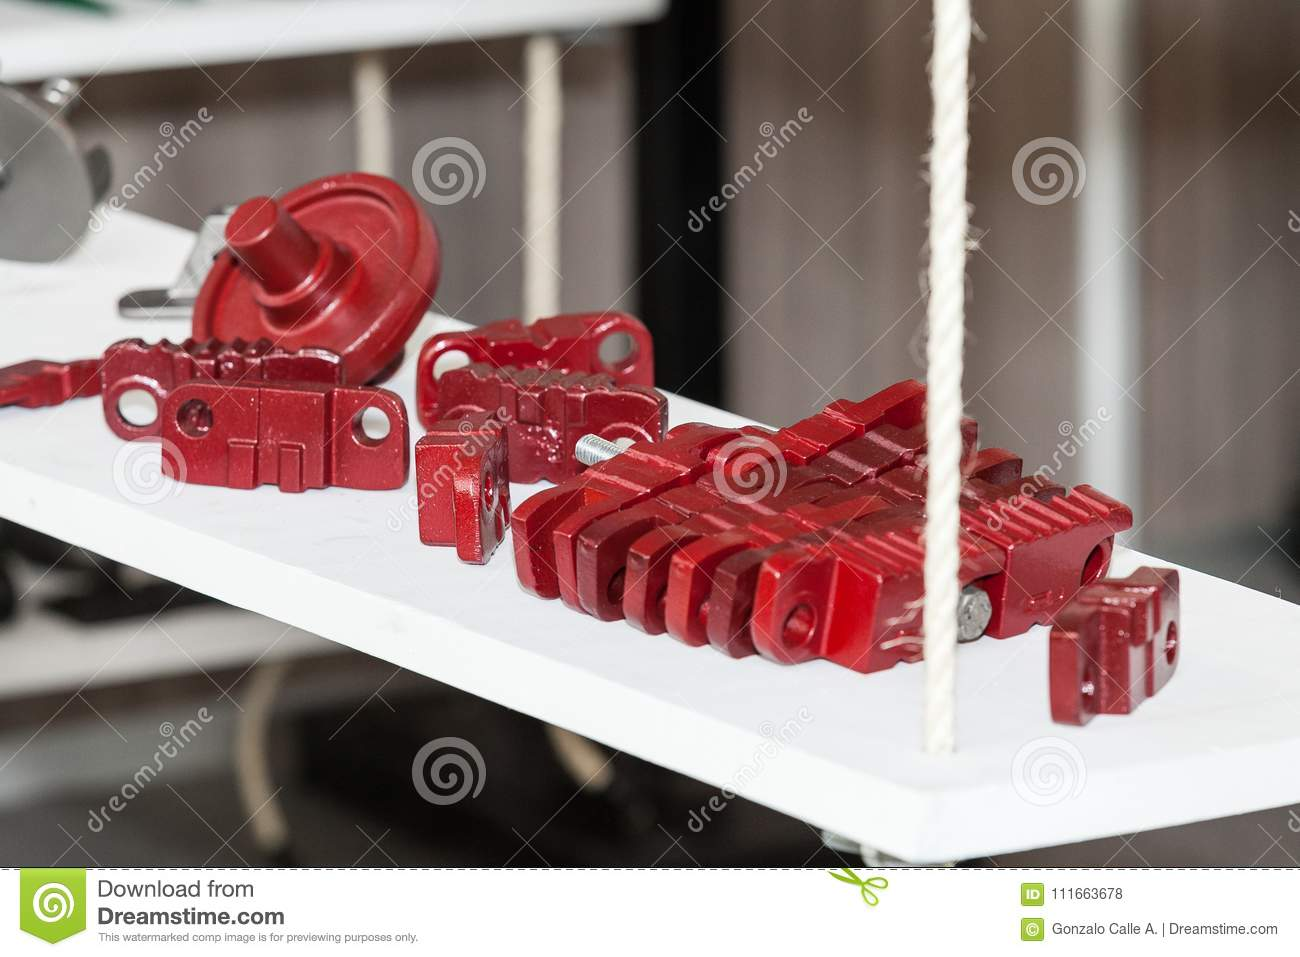 Auto Parts Of Vehicles, Parts For Vehicle Engines Stock Photo ...